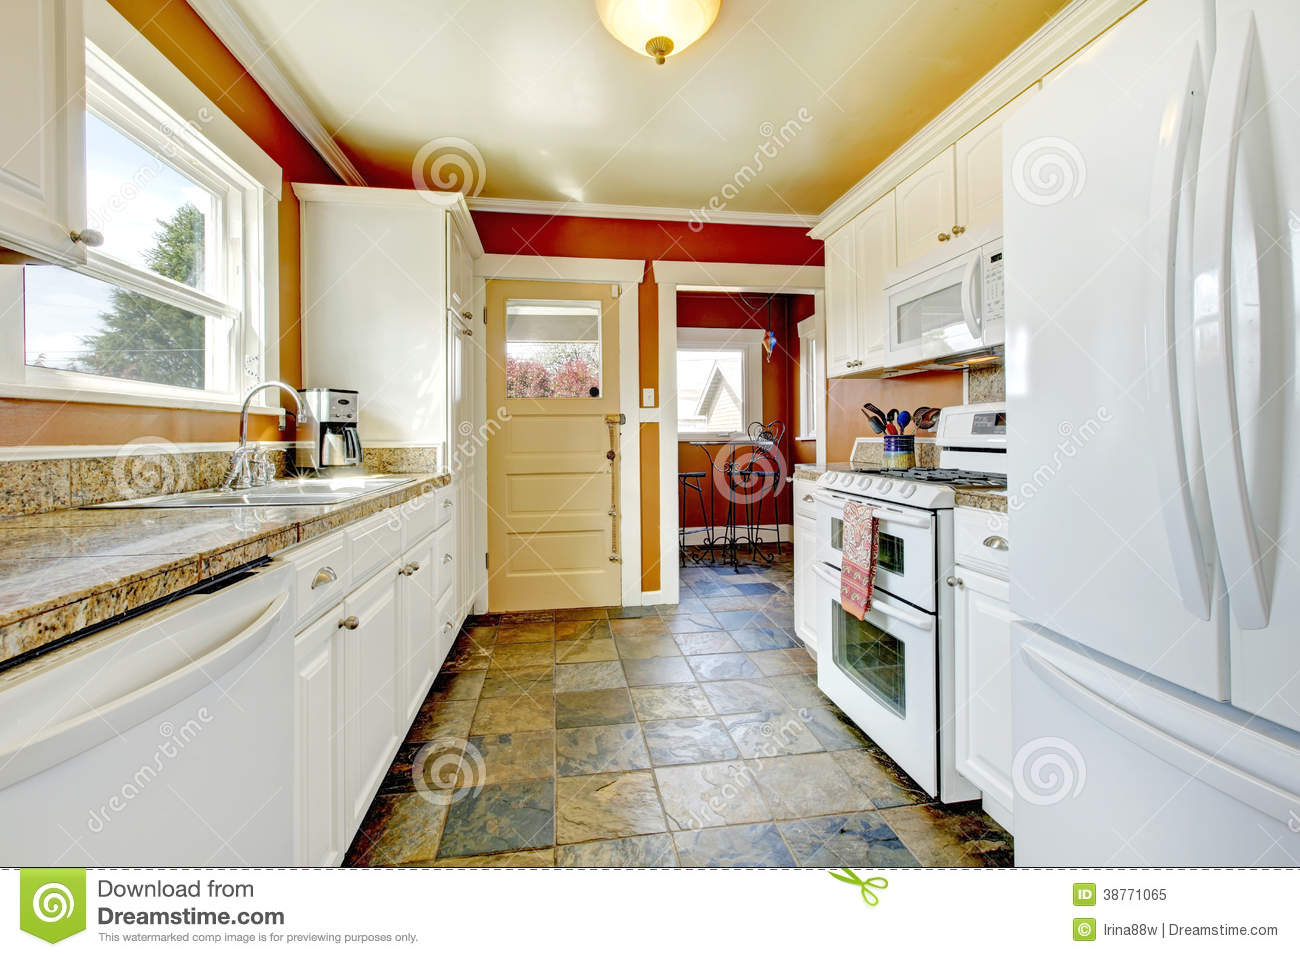 white kitchen cabinets orange walls orange kitchen room with white cabinets stock image 28879